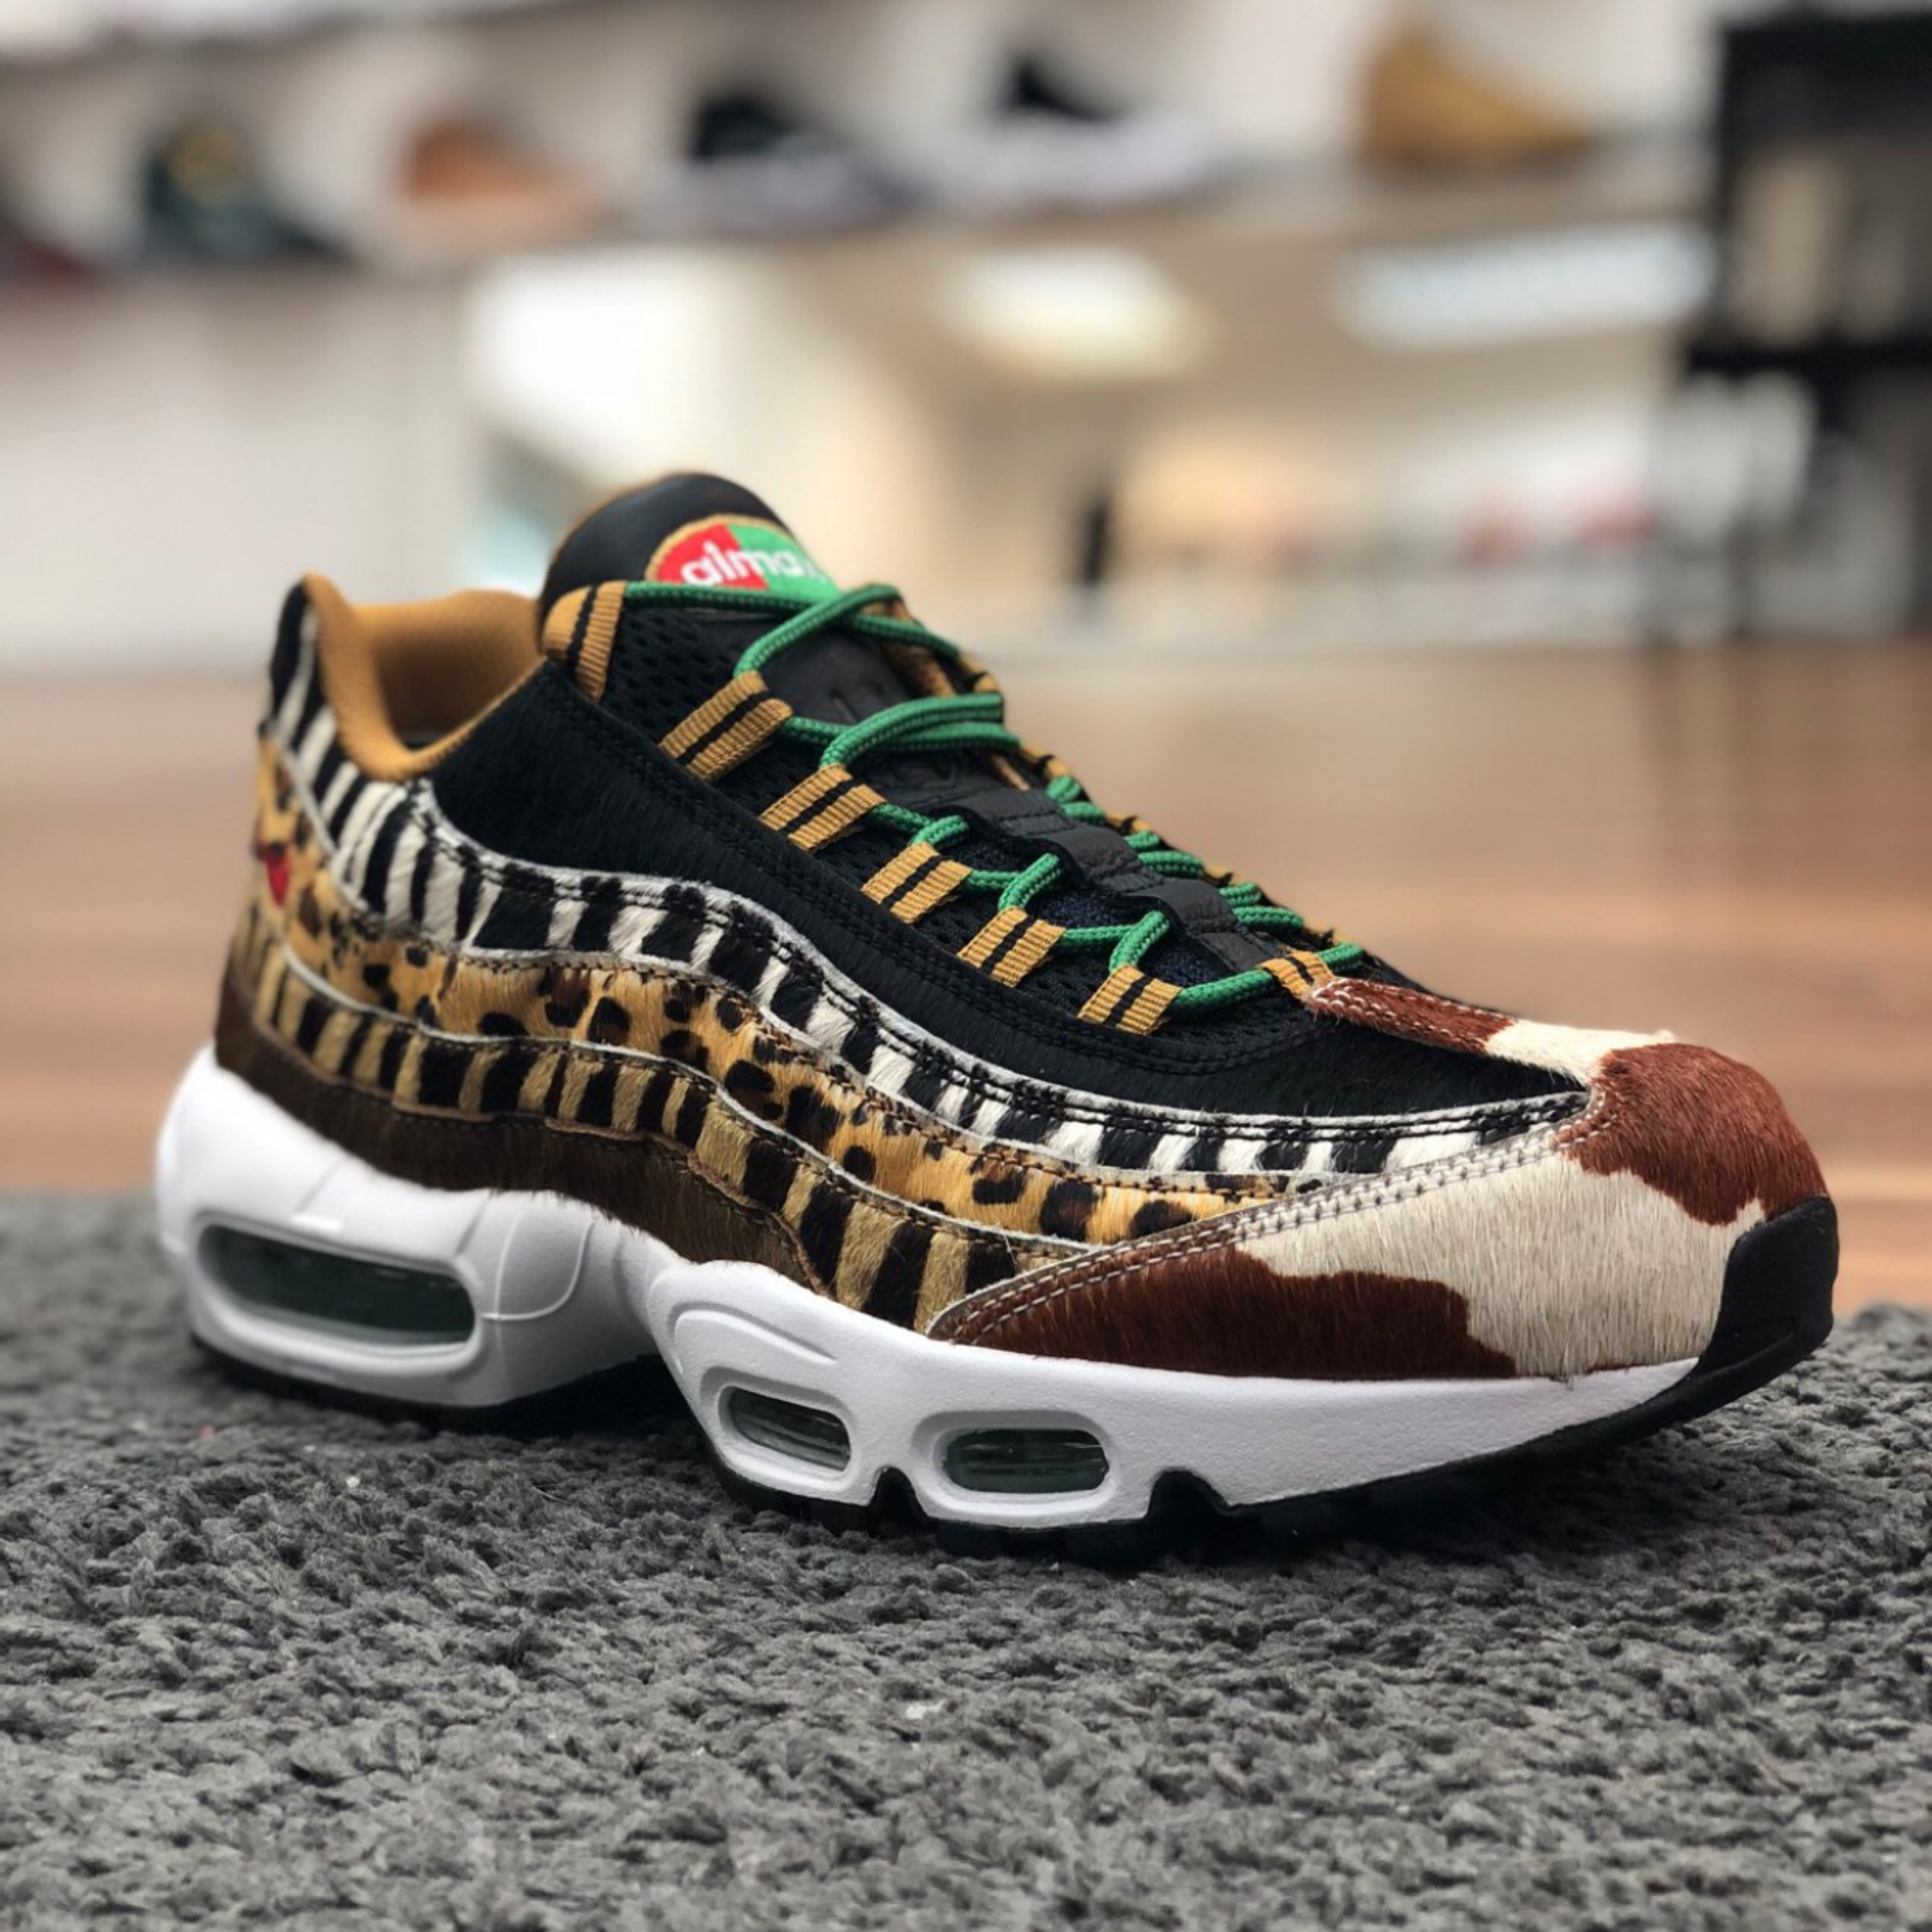 reputable site 5d110 c6d72 Atmos X Nike Air Max 95 Animal Pack 2.0